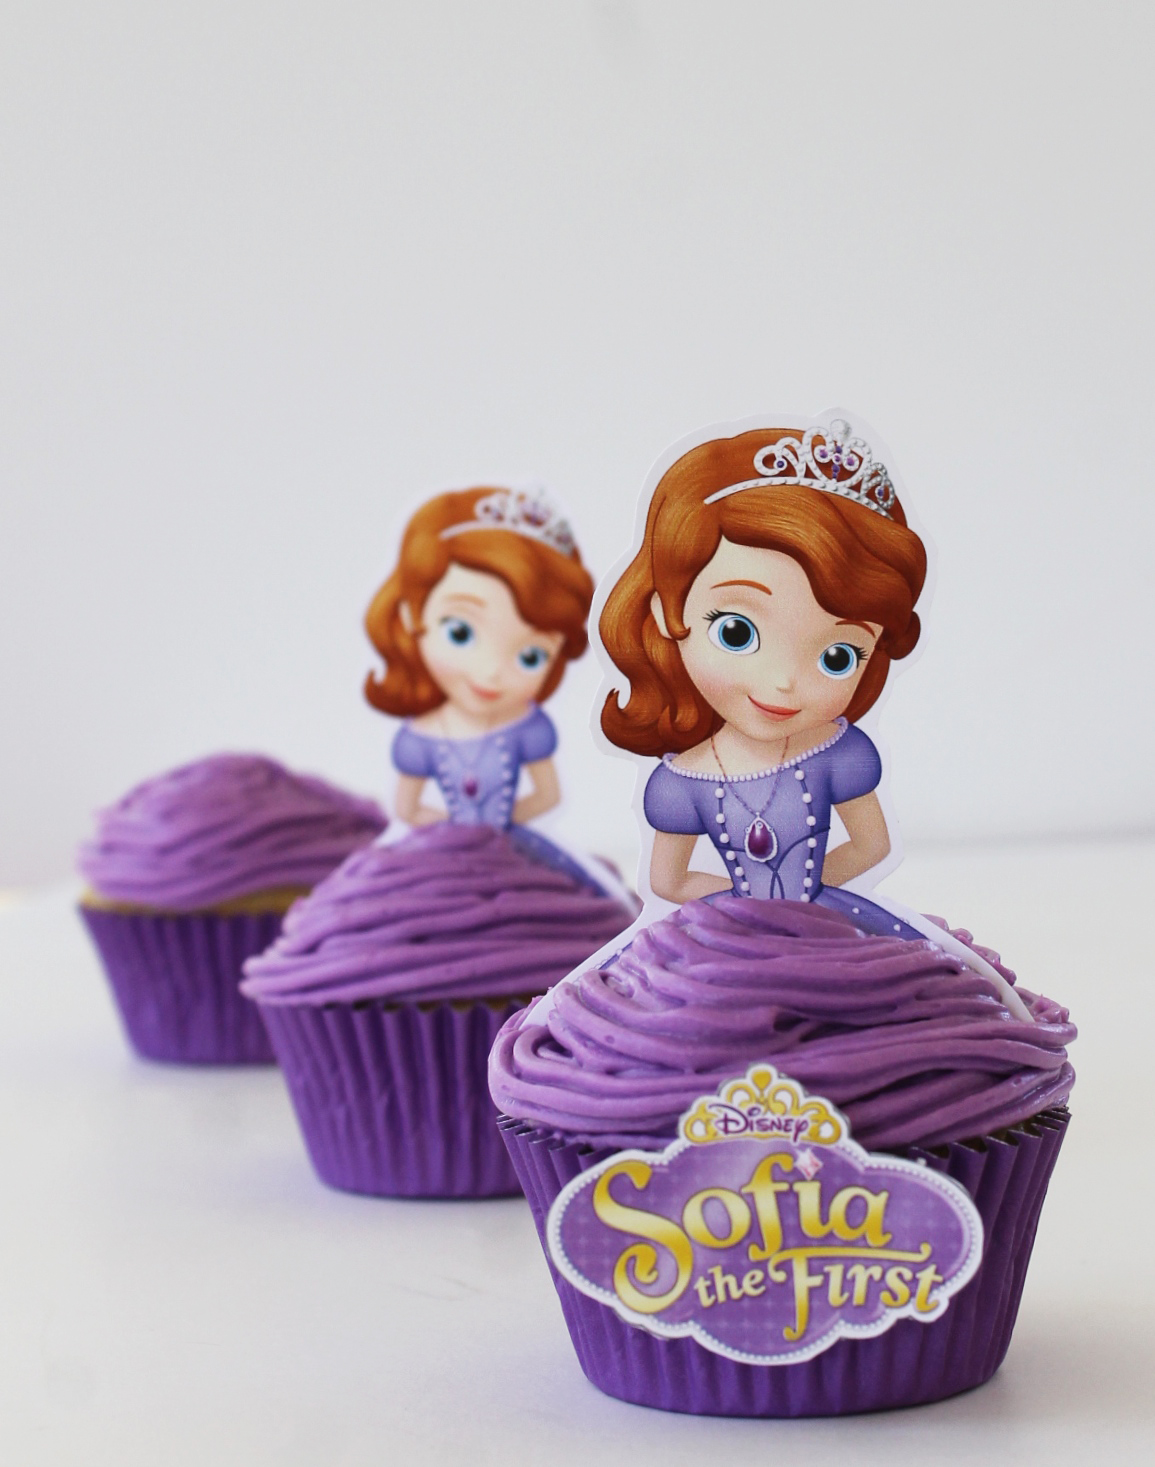 If You Are Thinking Of Throwing A Disney Sofia The First Themed Party These Cupcakes Easy And Quick To Make Include Free